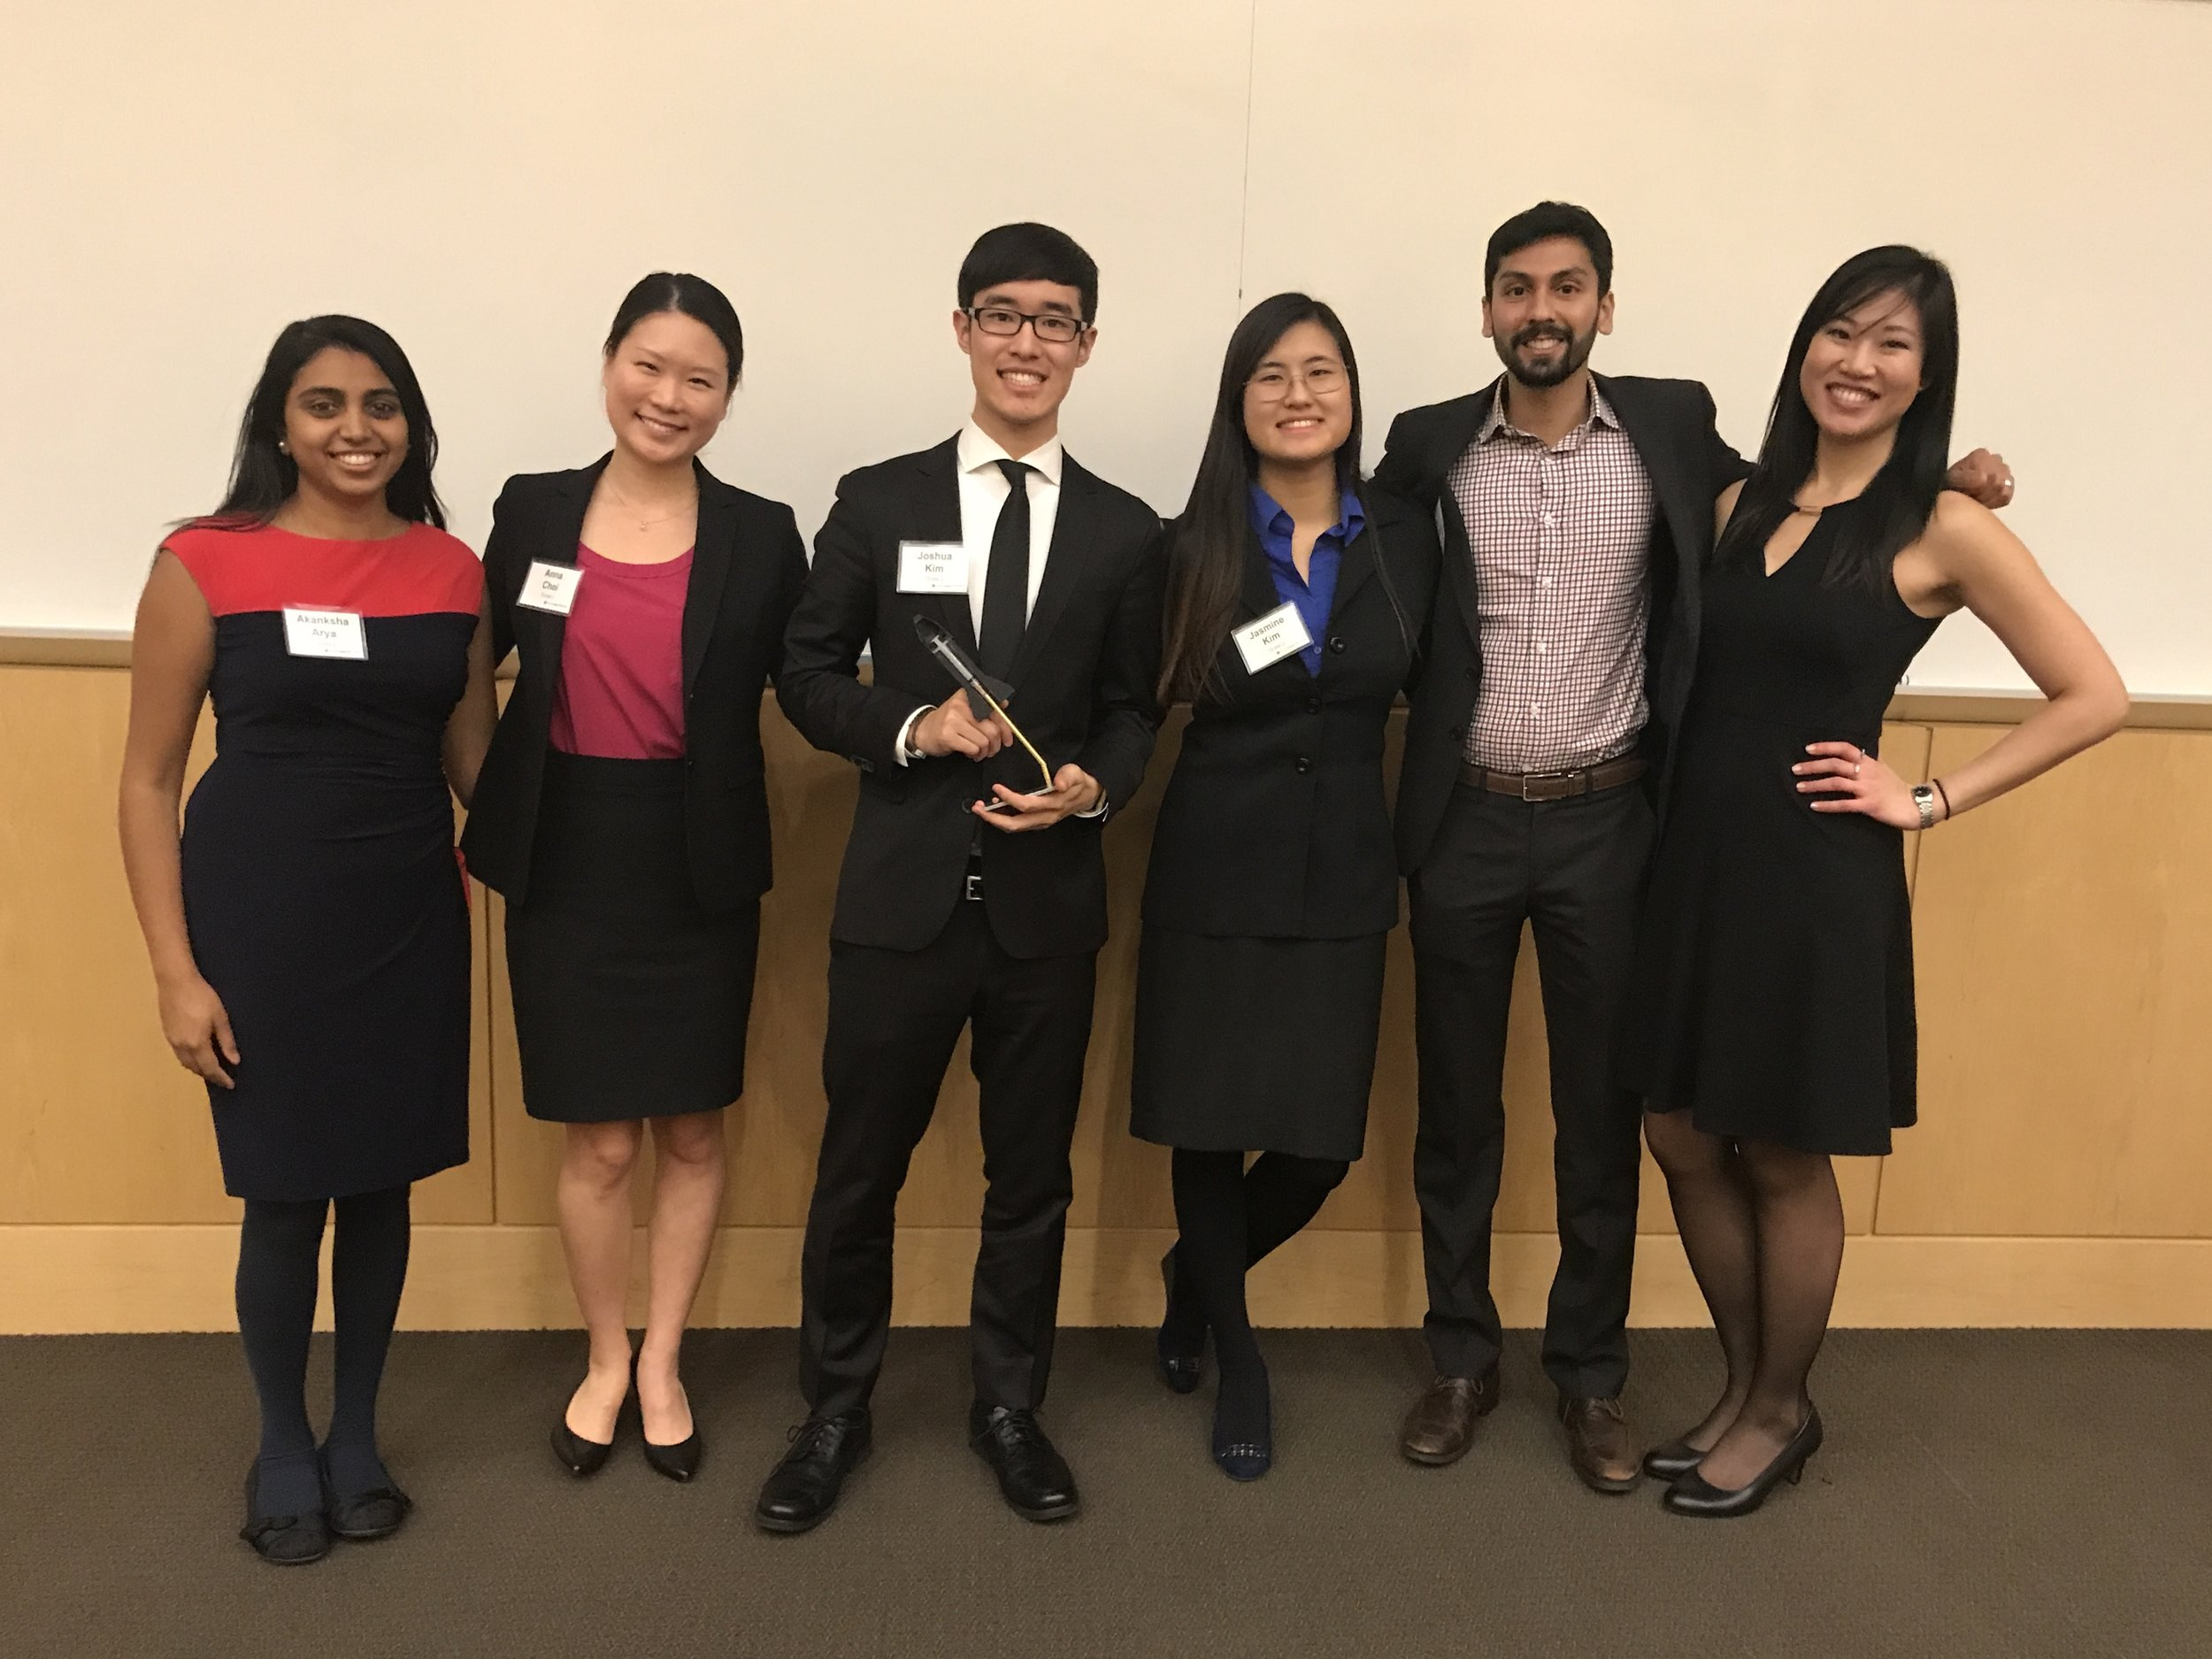 Left to Right :  Akanksha Arya  (NU Business),  Anna Choi  (NU Law),  Joshua Kim  (NU Engineering),  Jasmine Kim  (NU Engineering),  Nish Rastogi  (NU Business),  Tiffany Wen  (NU Medical)